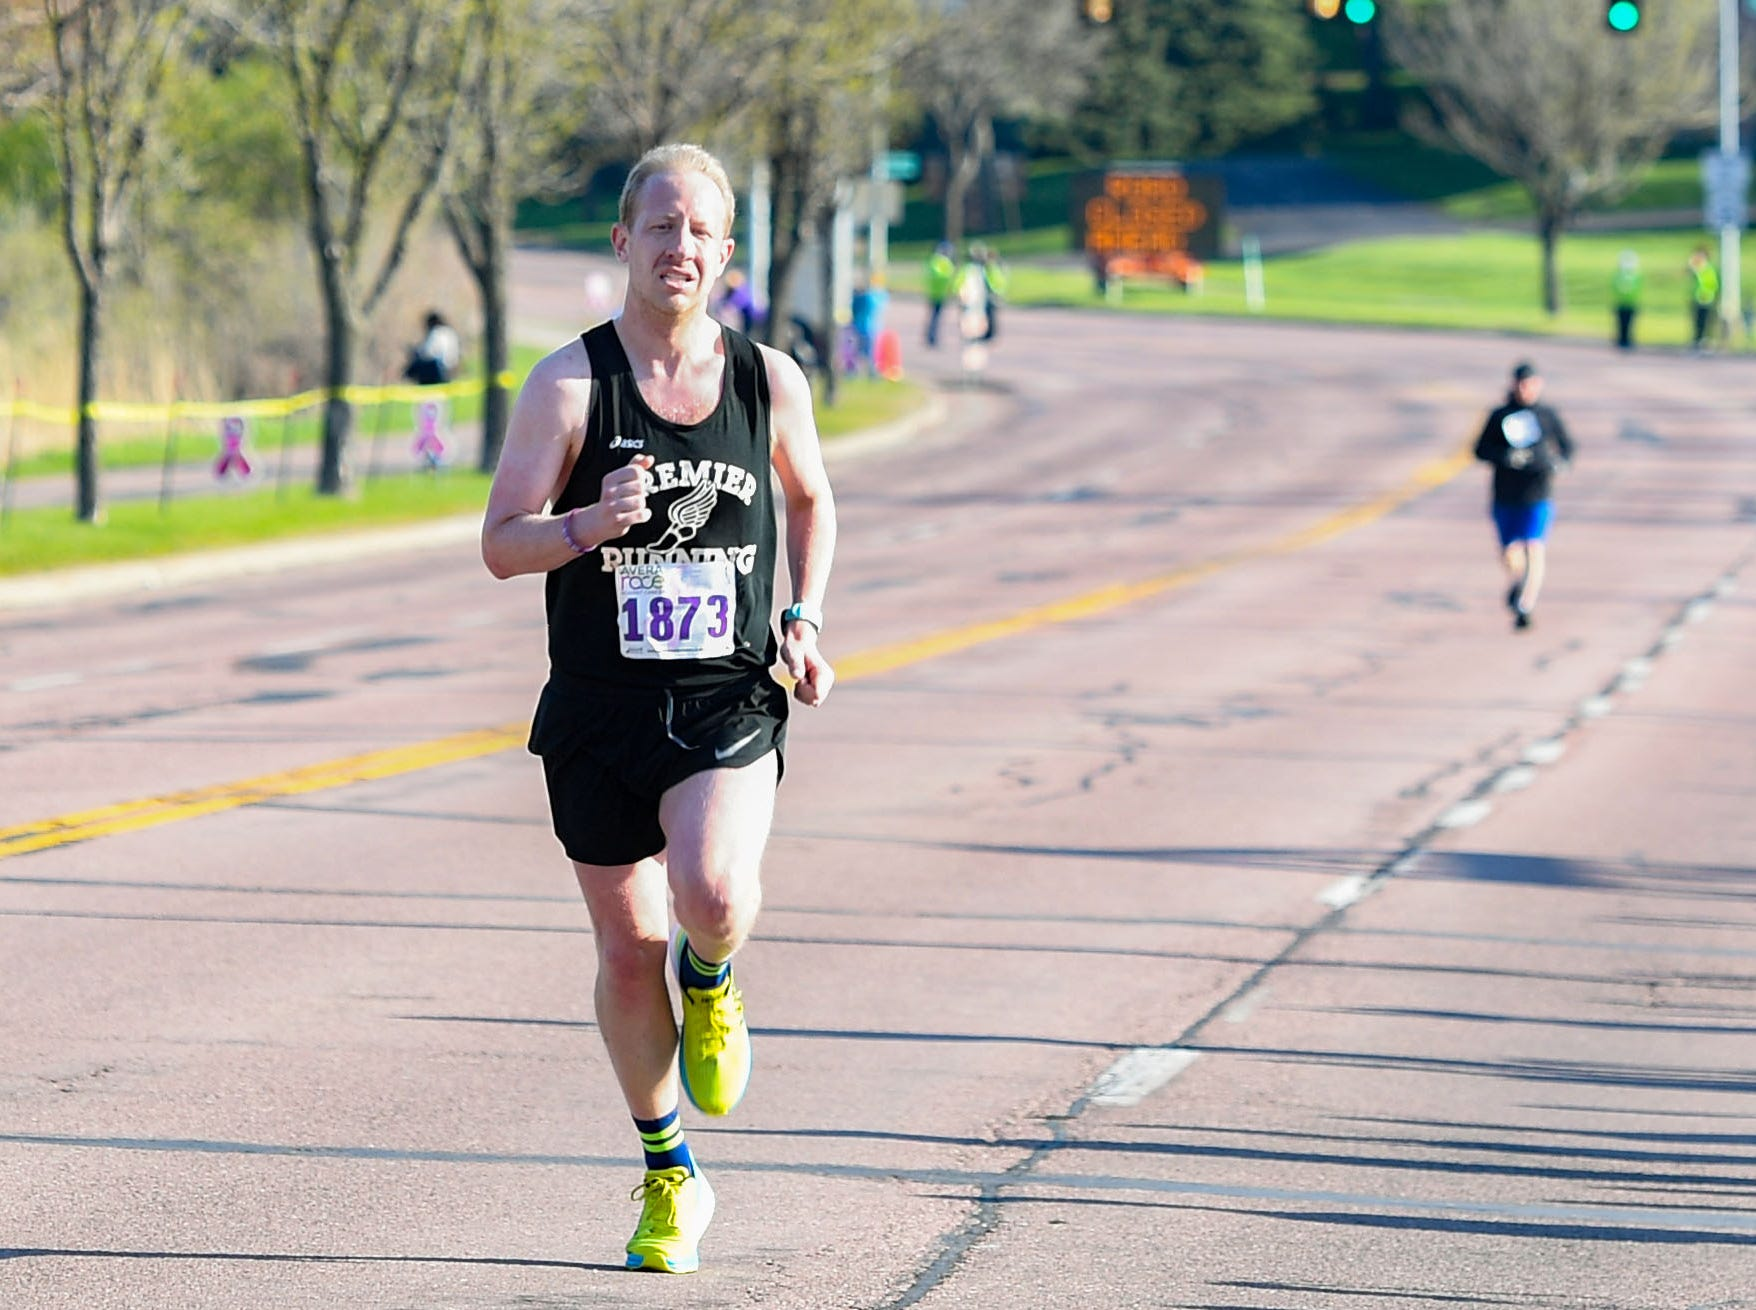 Marshall Kambestad is the first 10K runner to cross the finish line at the 31st Avera Health Race Against Cancer on Saturday morning, May 11, in Sioux Falls.